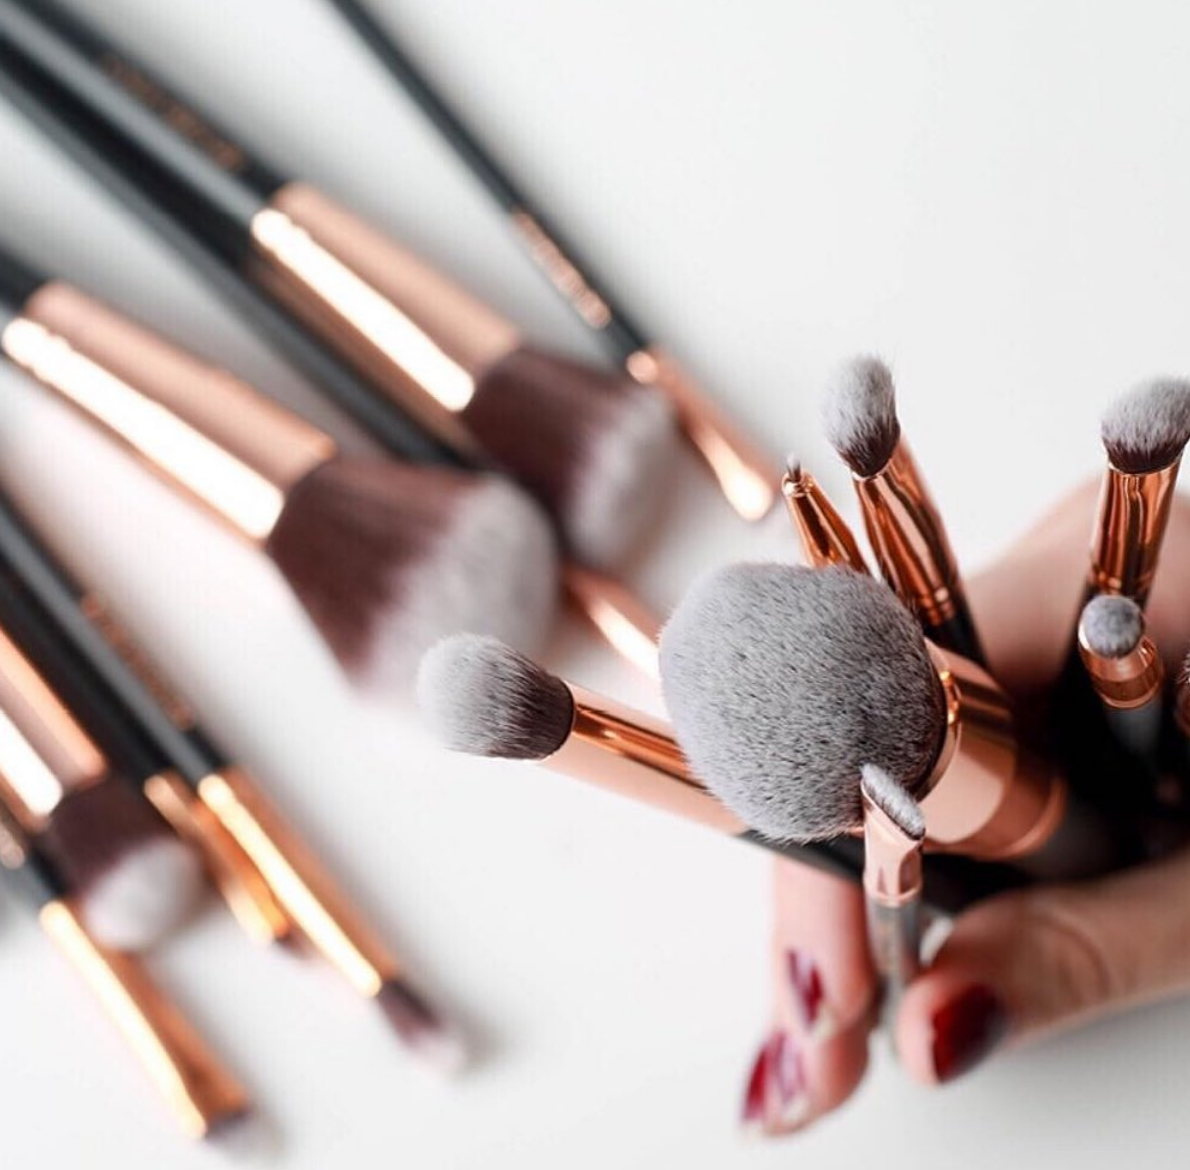 MOTD Cosmetics - Makeup Brushes | Brands Looking for Influencers